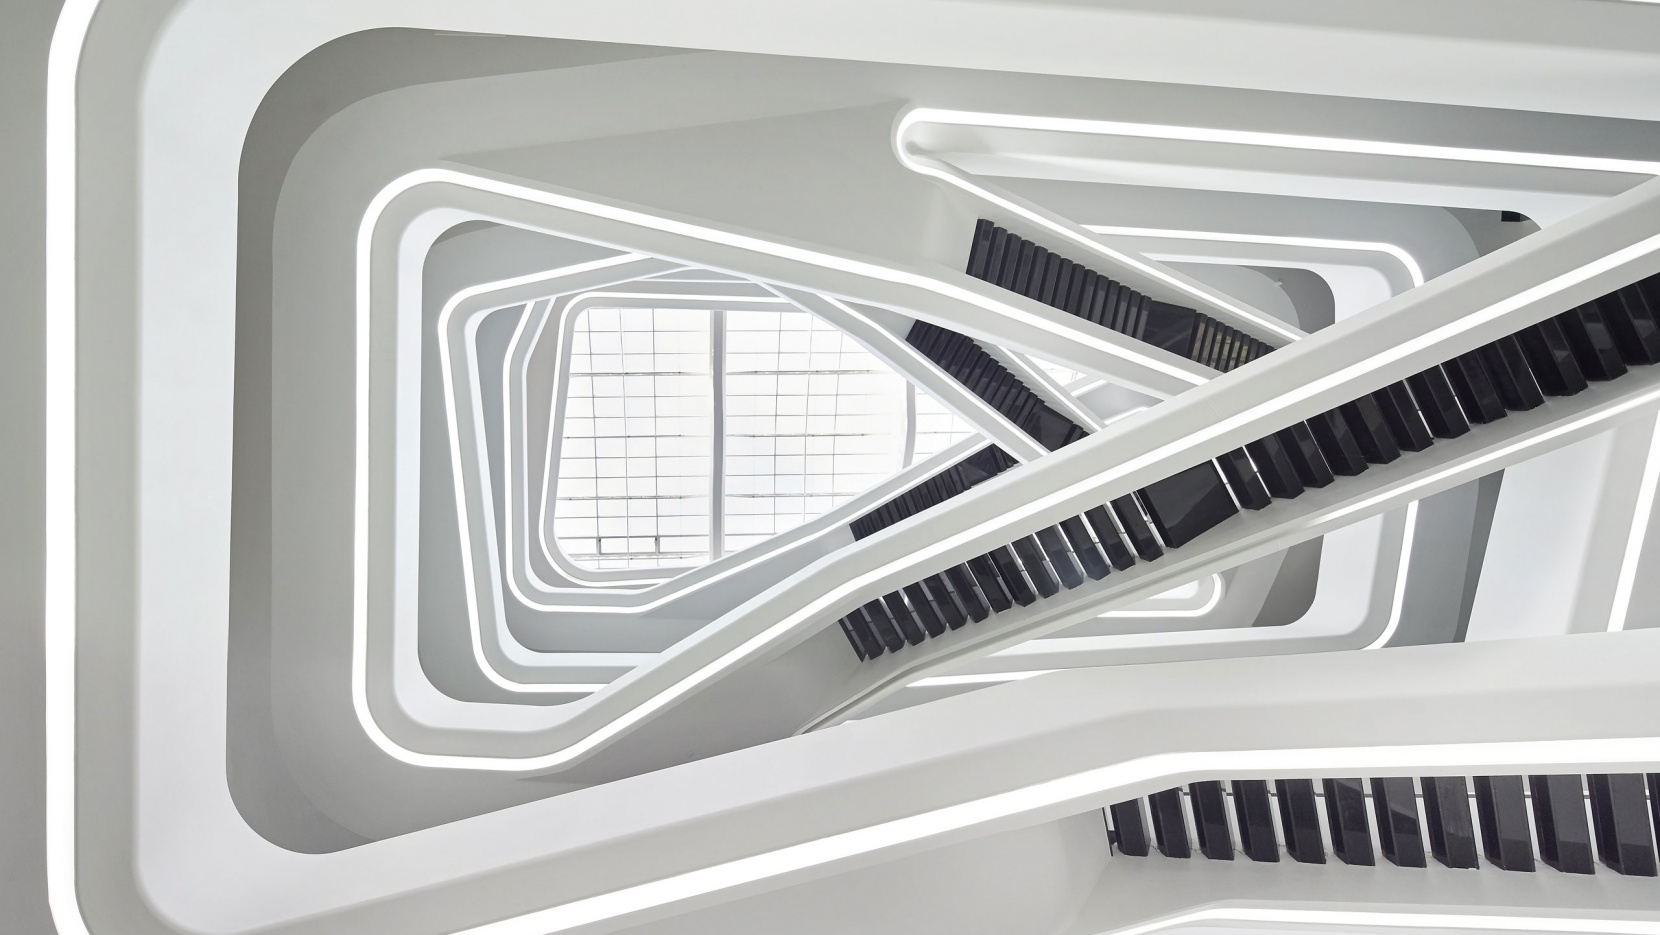 dominion office building in moscow russia by zaha hadid. Black Bedroom Furniture Sets. Home Design Ideas